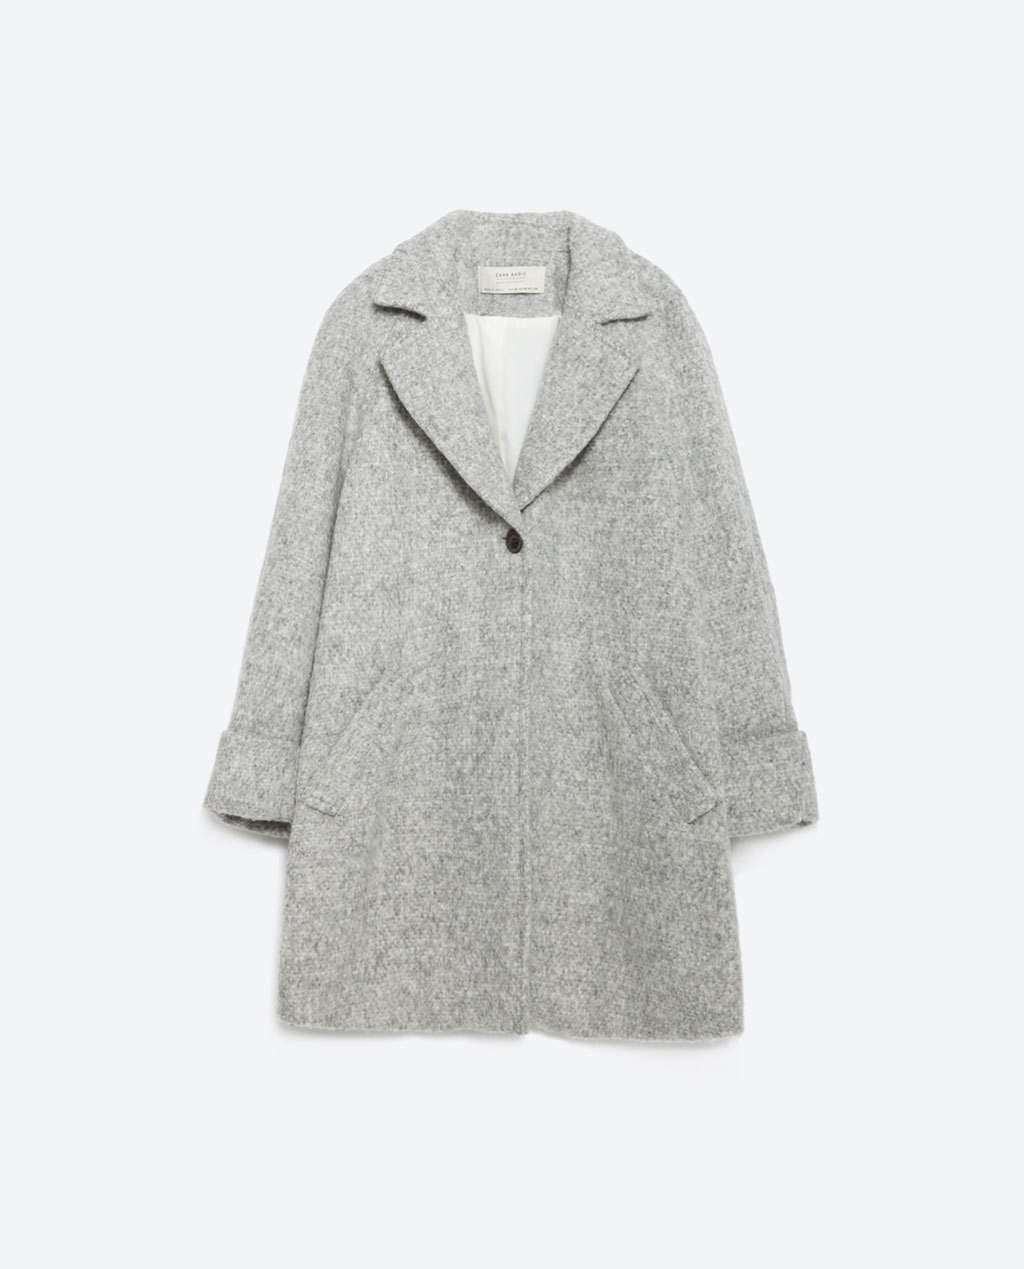 Wool Coat - style: single breasted; collar: standard lapel/rever collar; pattern: herringbone/tweed; length: mid thigh; predominant colour: light grey; occasions: casual, creative work; fit: straight cut (boxy); fibres: wool - 100%; sleeve length: long sleeve; sleeve style: standard; collar break: medium; pattern type: fabric; texture group: woven bulky/heavy; season: a/w 2015